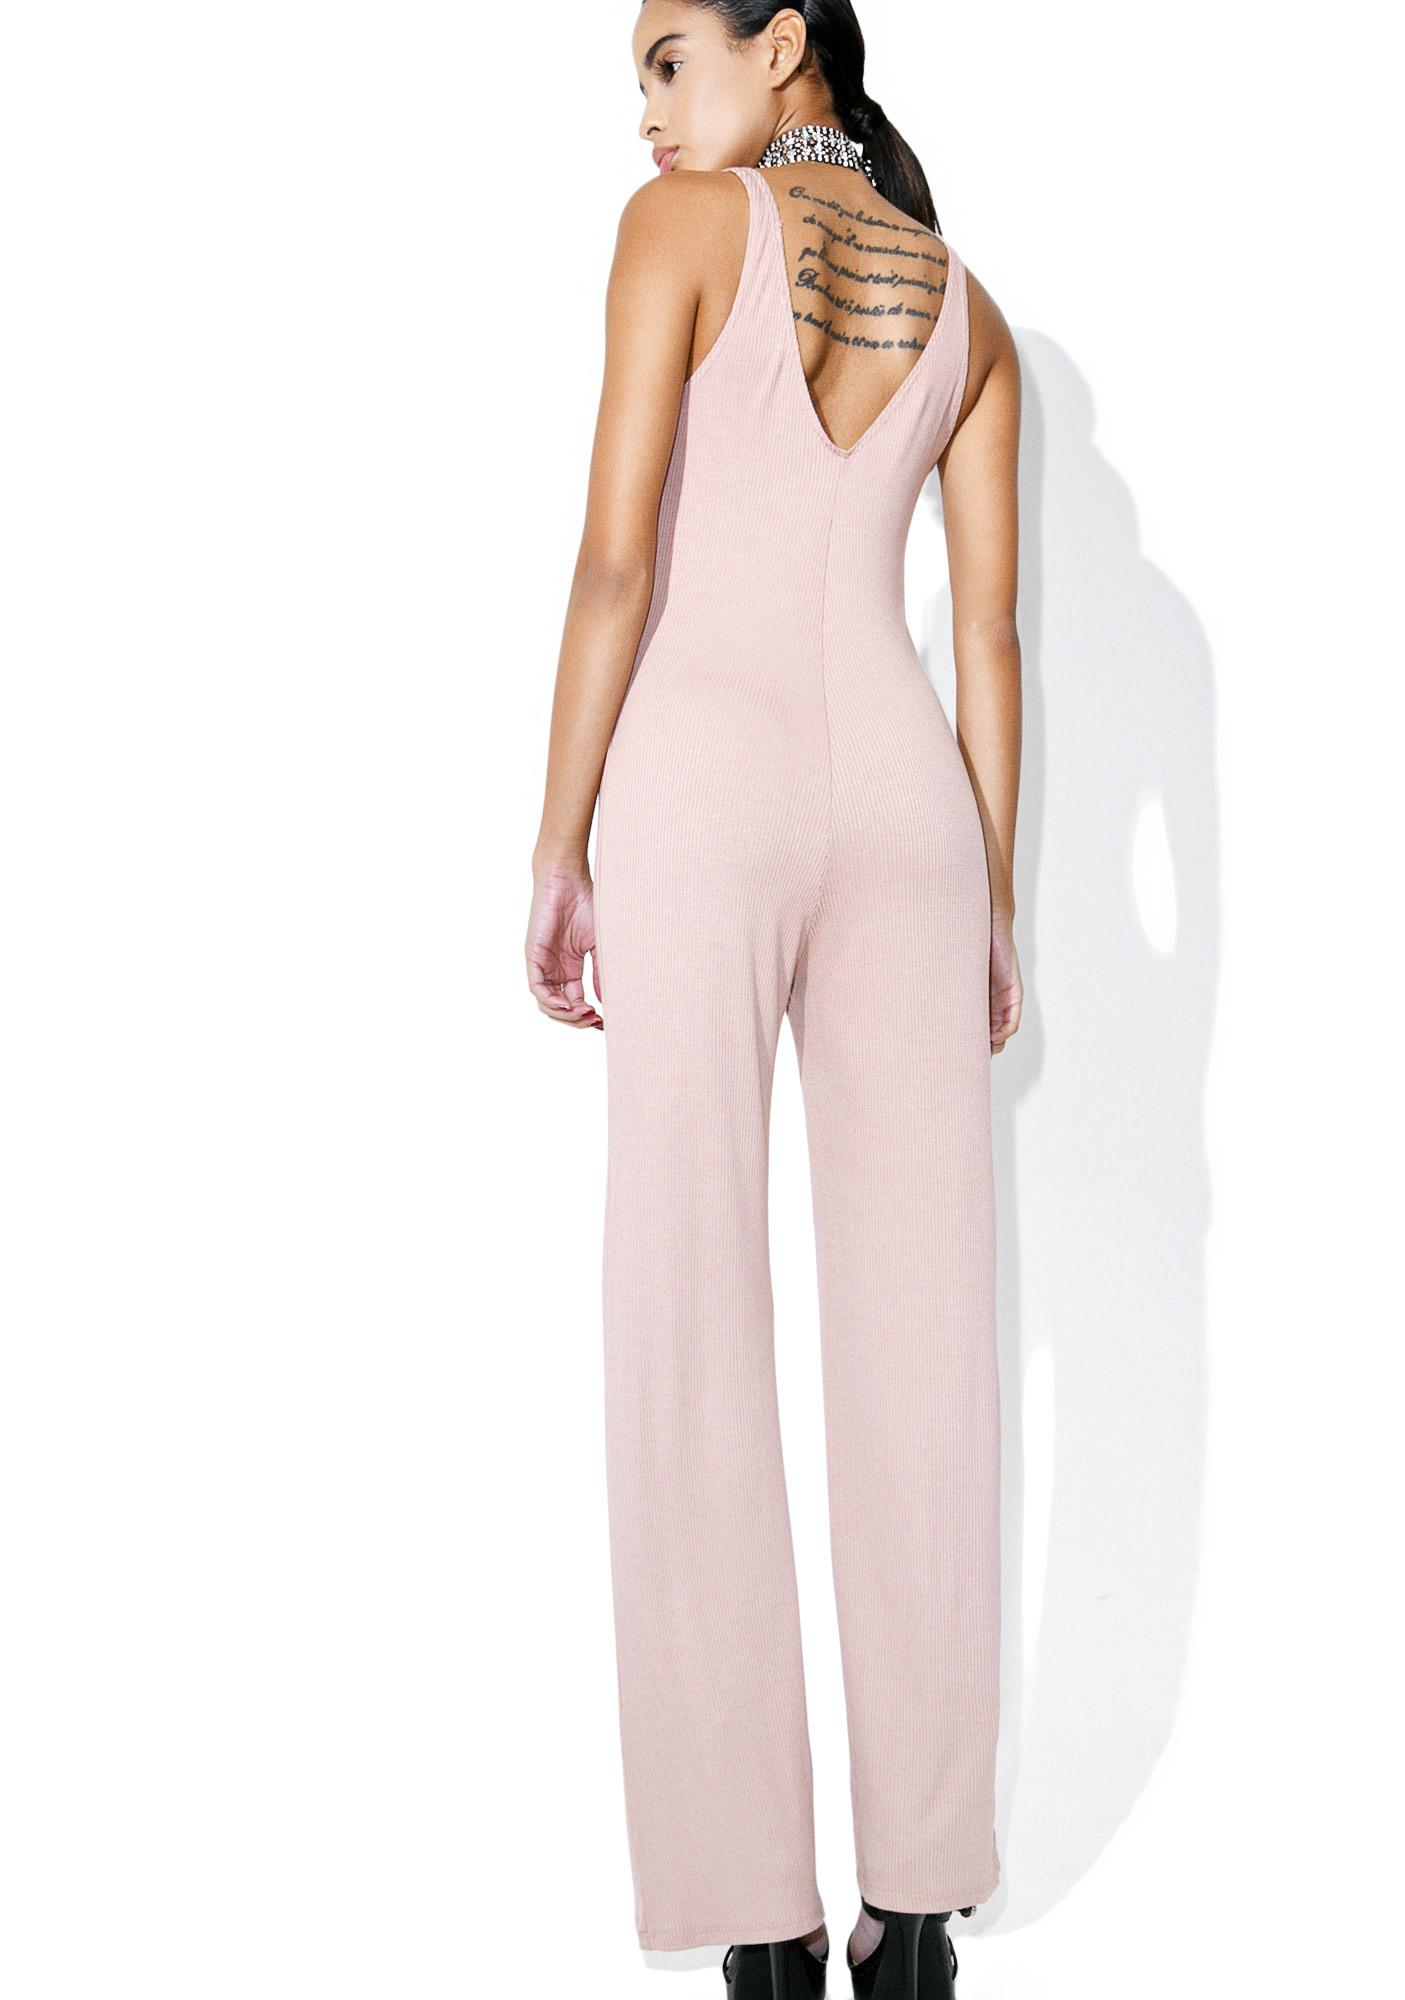 Crush On U Jumpsuit